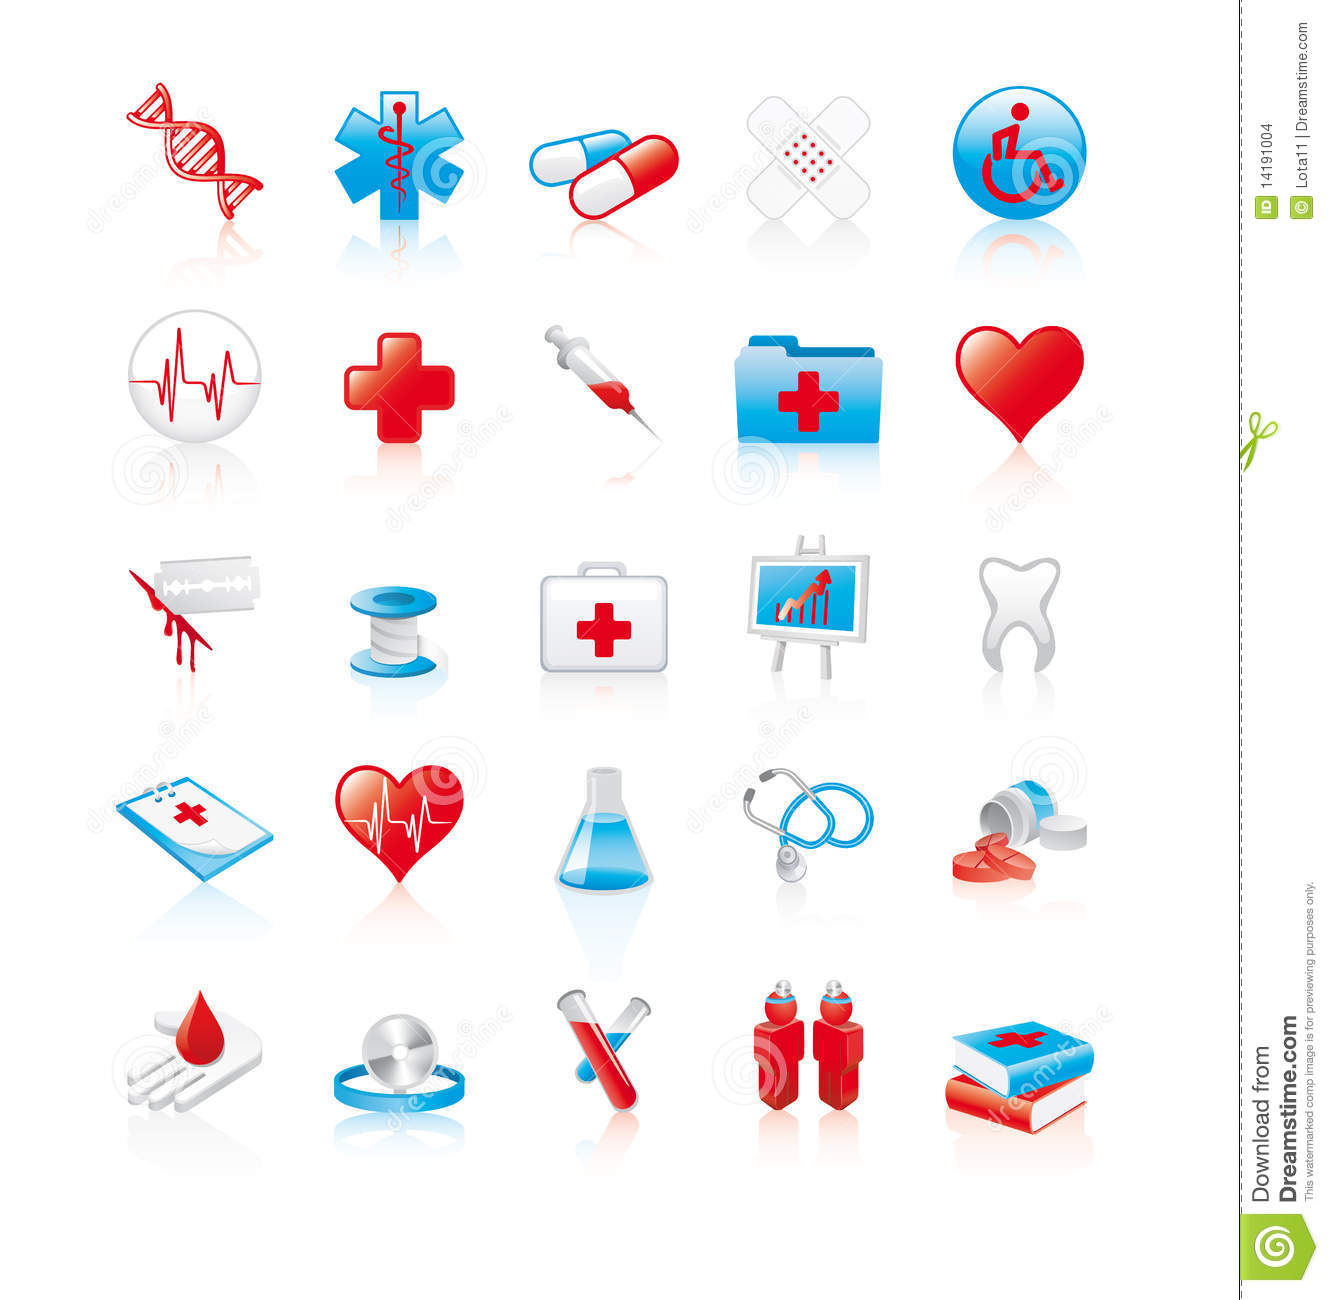 set-20-glossy-medical-icons-14191004.jpg